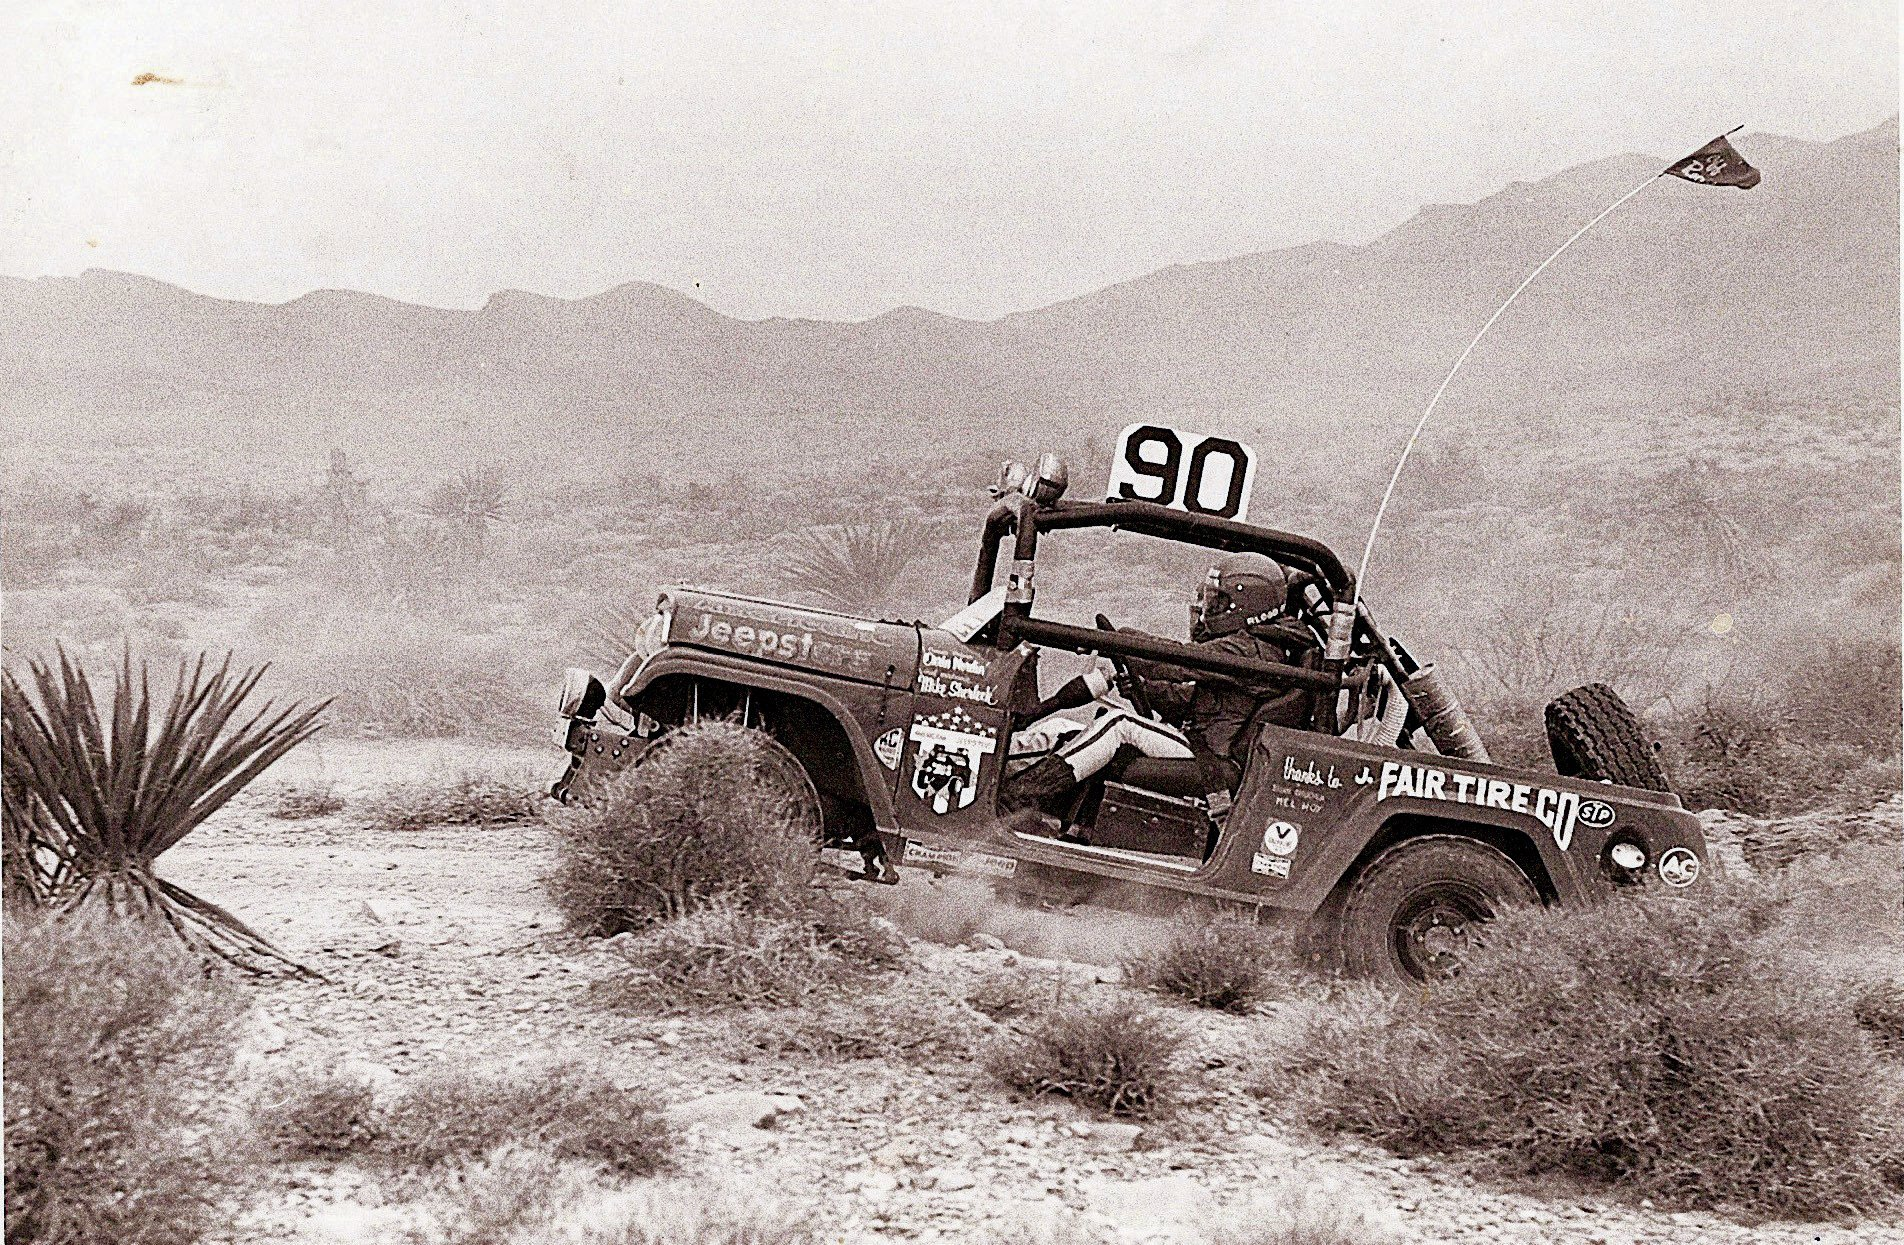 Jeep at the Parker 400 in 1972